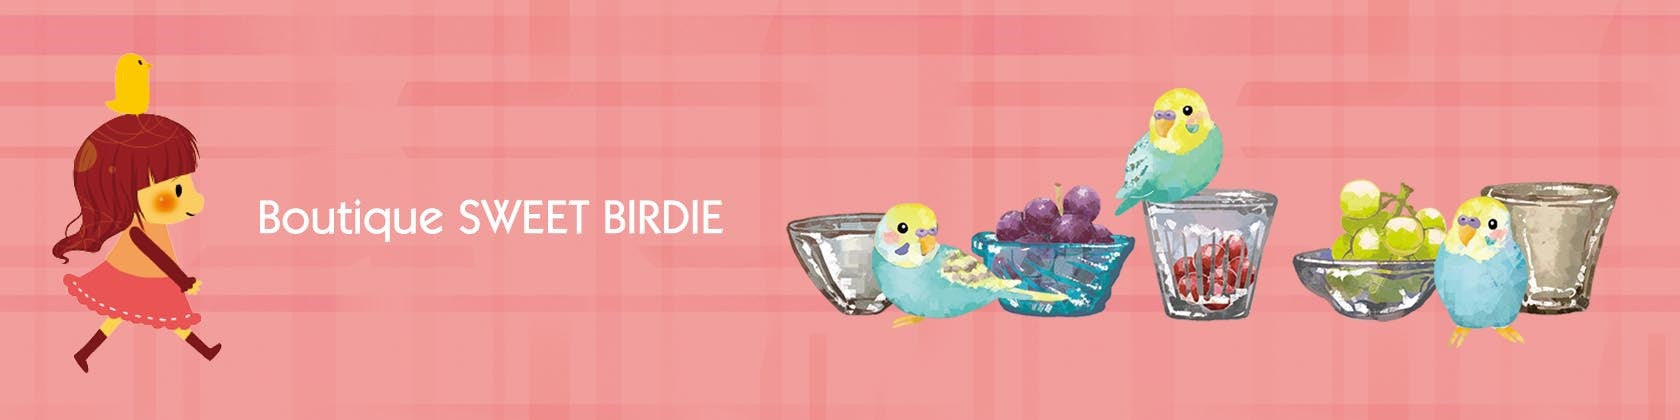 Boutique SWEET BIRDIE